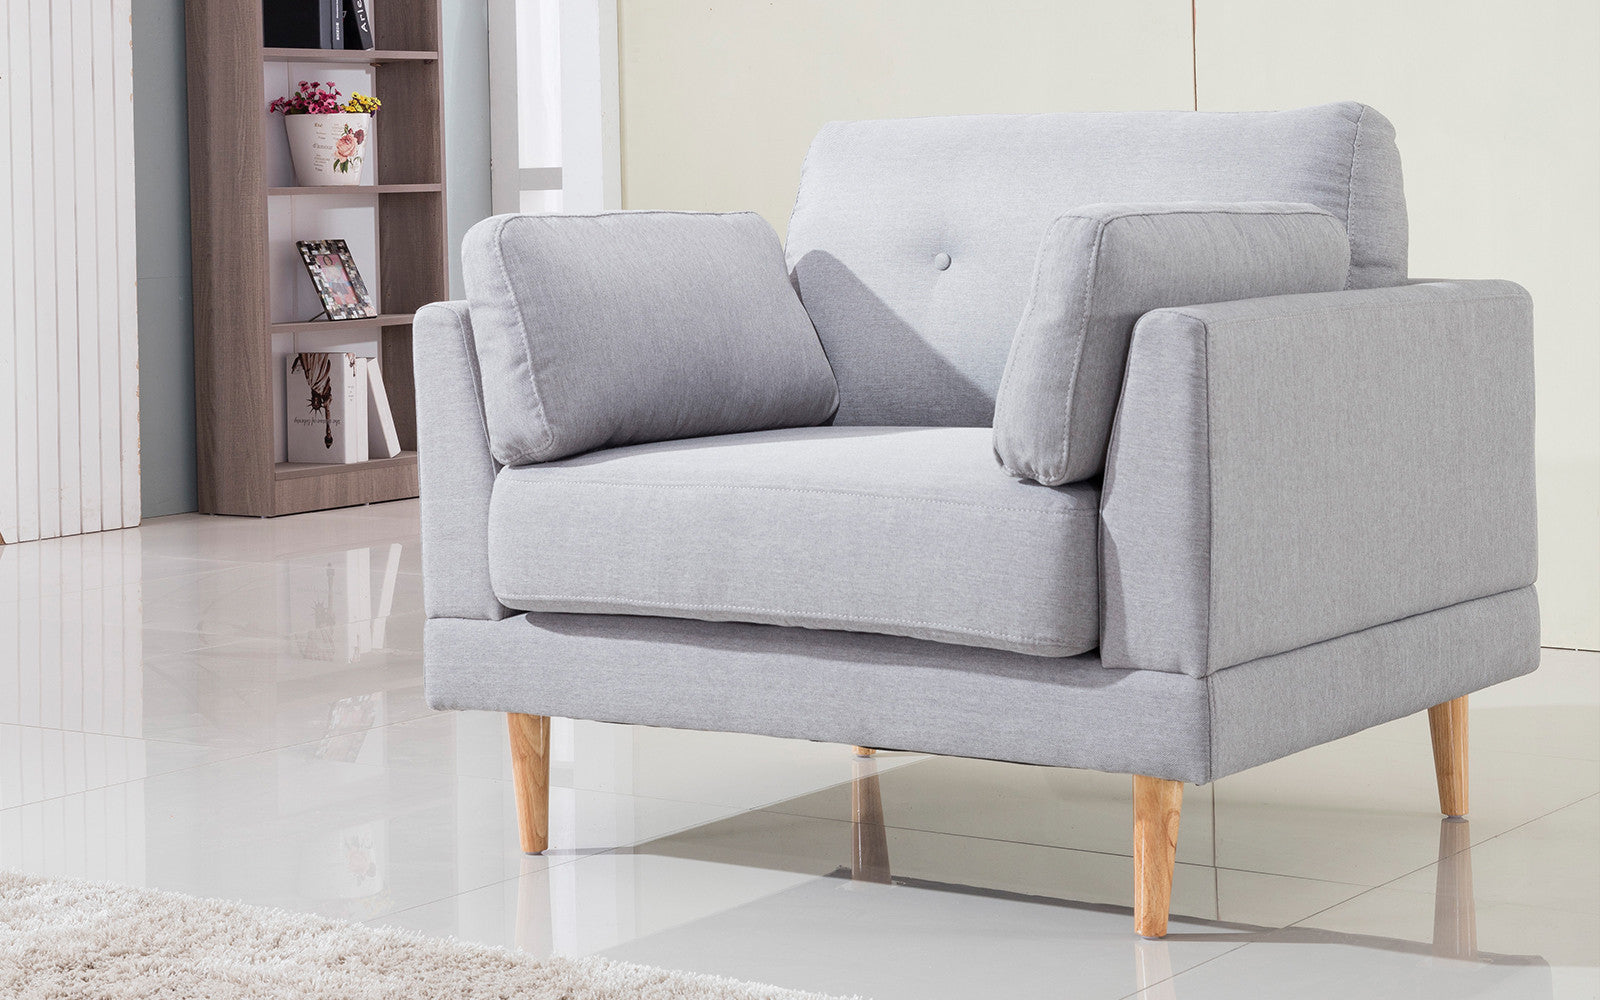 Club Armchair Accent Pillows Image